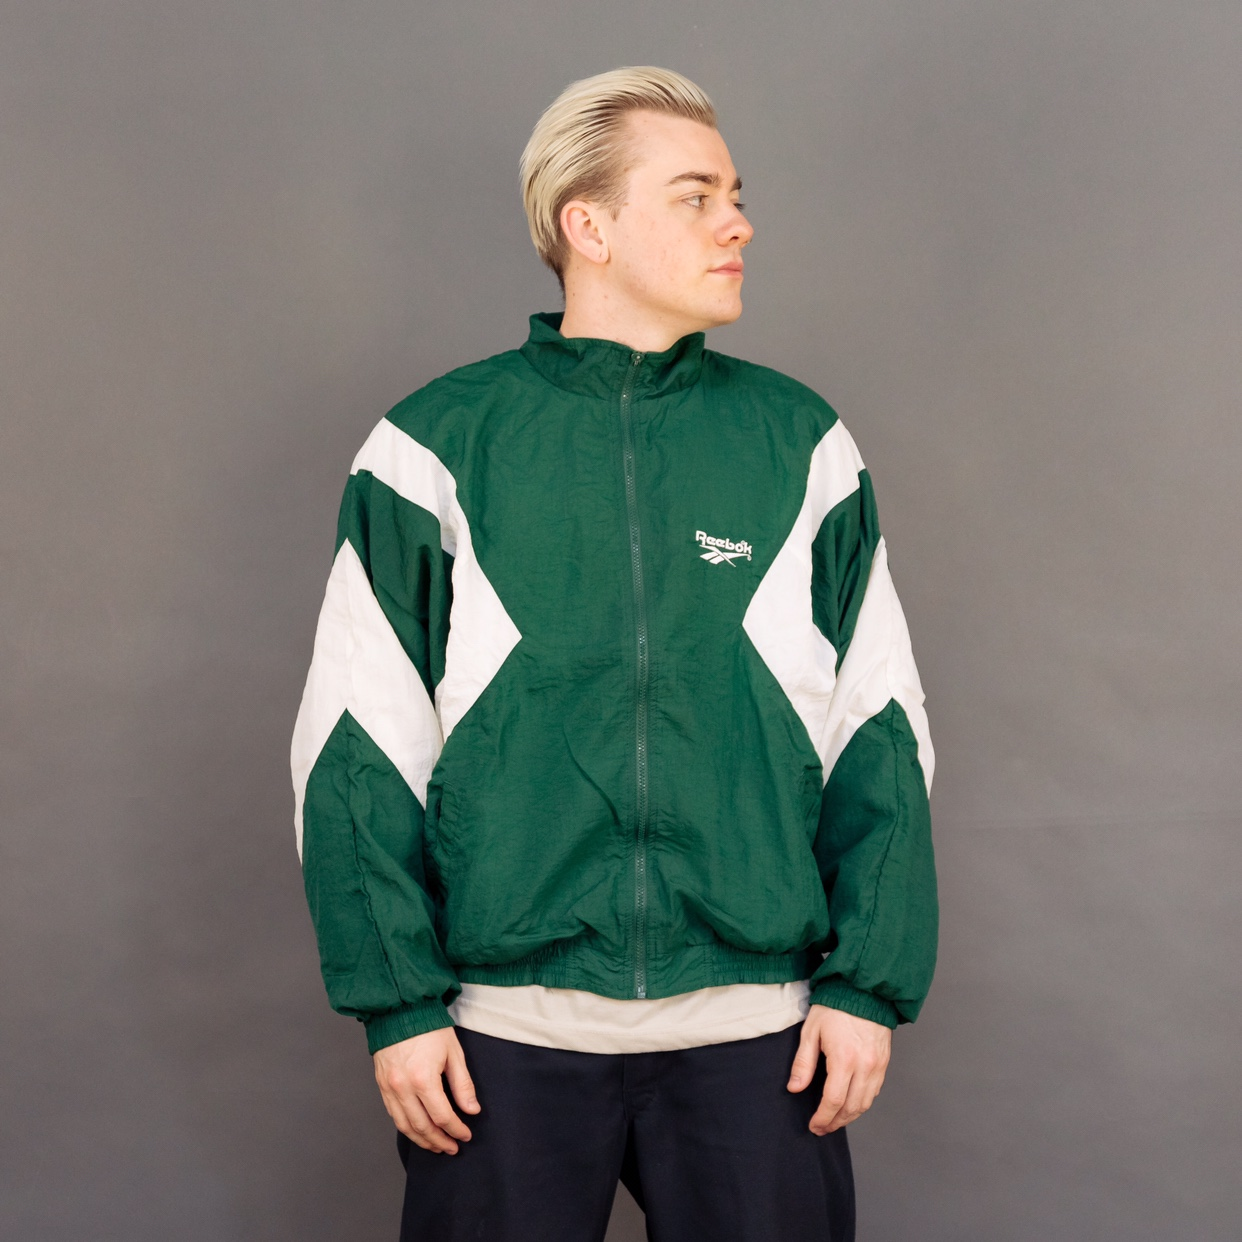 81633530ea576 Vintage 90s Reebok green and white zip p windbreaker... - Depop